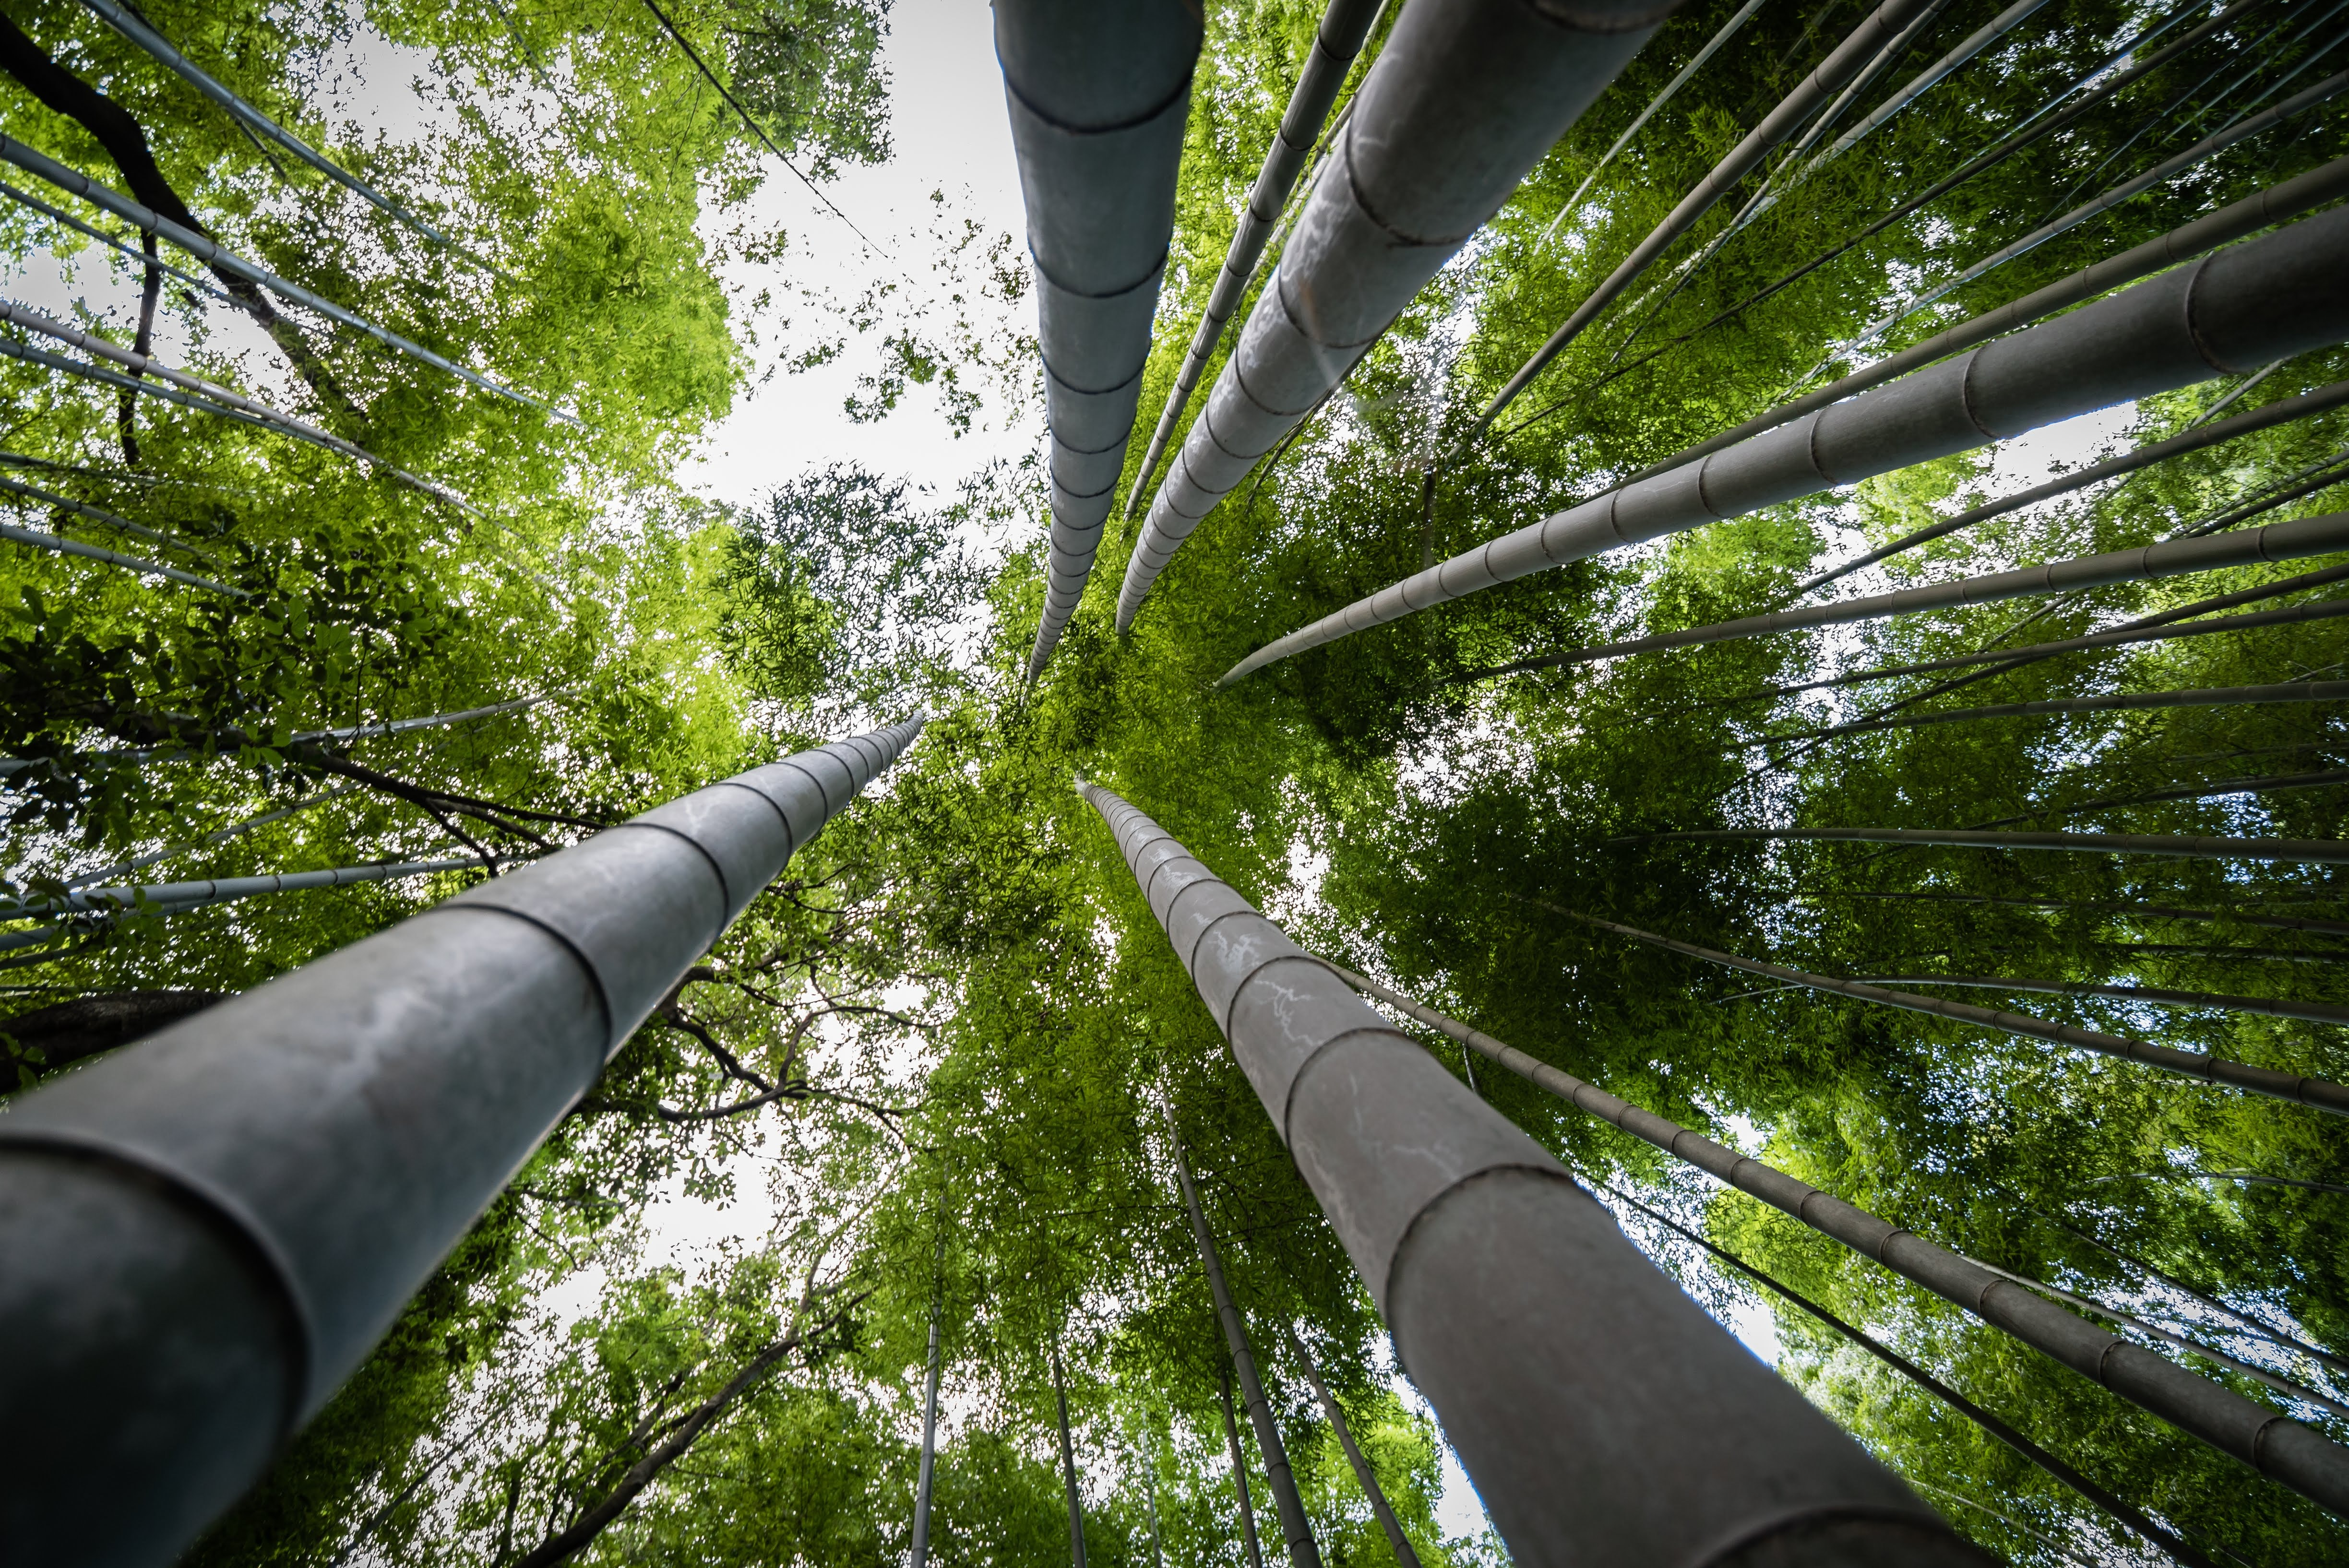 worm's-eye view photography of bamboo trees